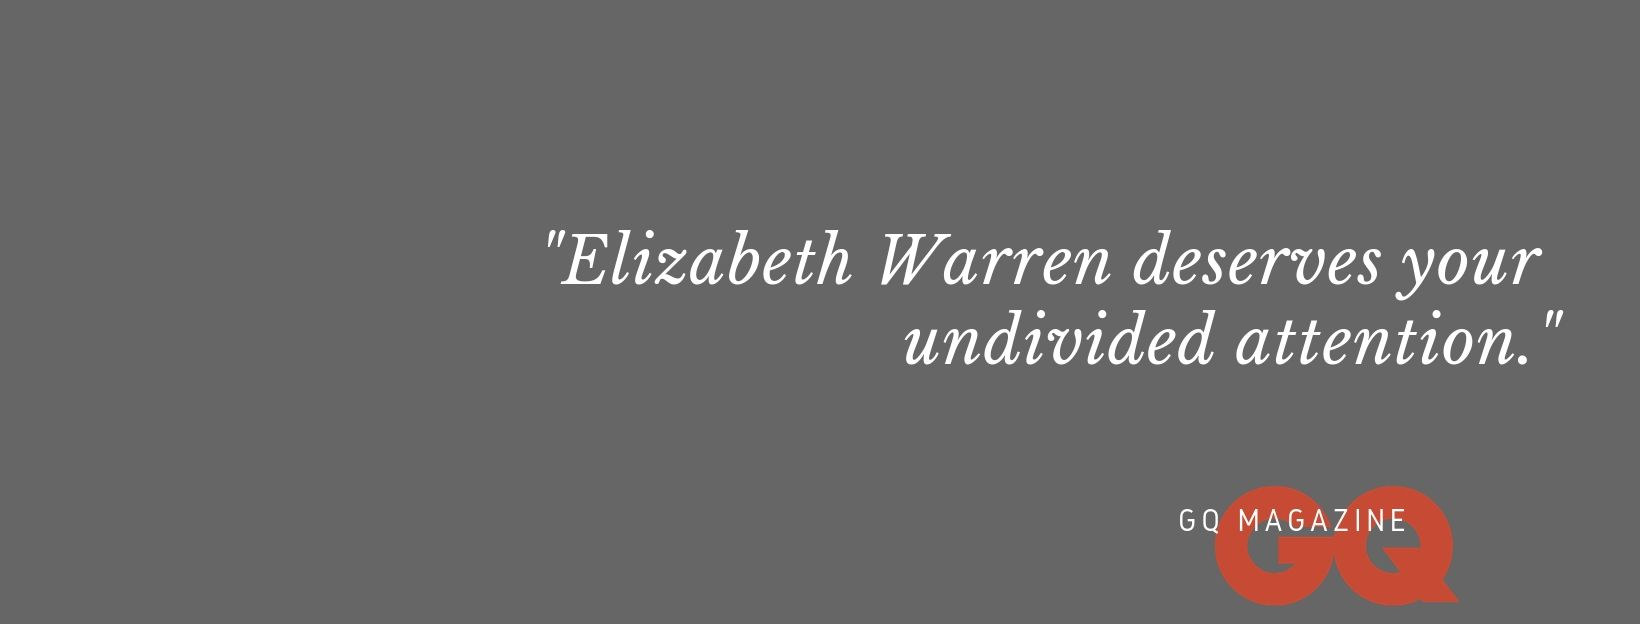 Elizabeth Warren Deserves Your Undivided Attention Gq Quote Facebook Cover Image Facebook Cover Quotes Elizabeth Warren For President Facebook Cover Images